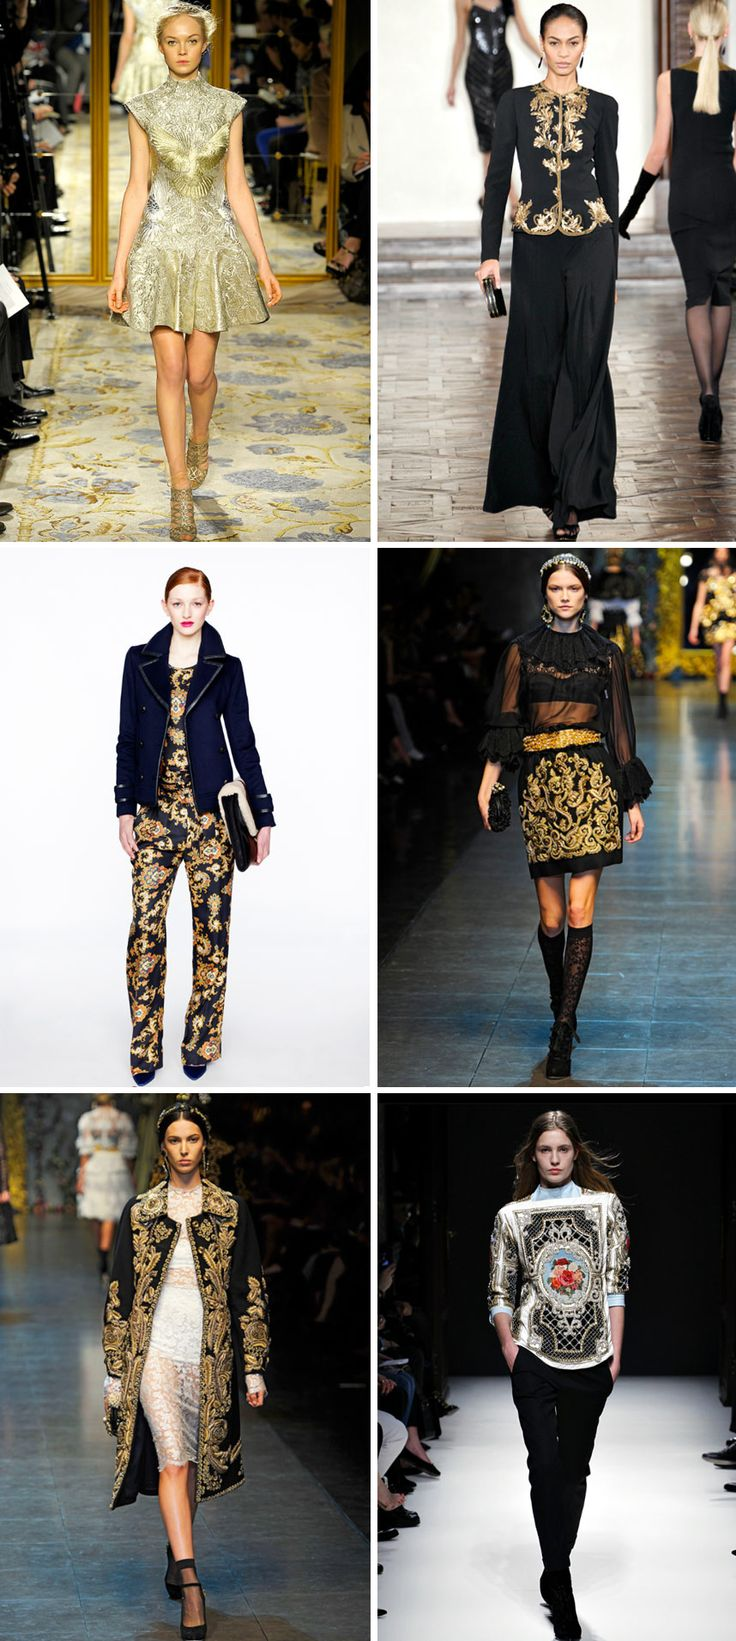 8 Best Modern Baroque Images On Pinterest Style Inspiration Baroque And Anna Dello Russo